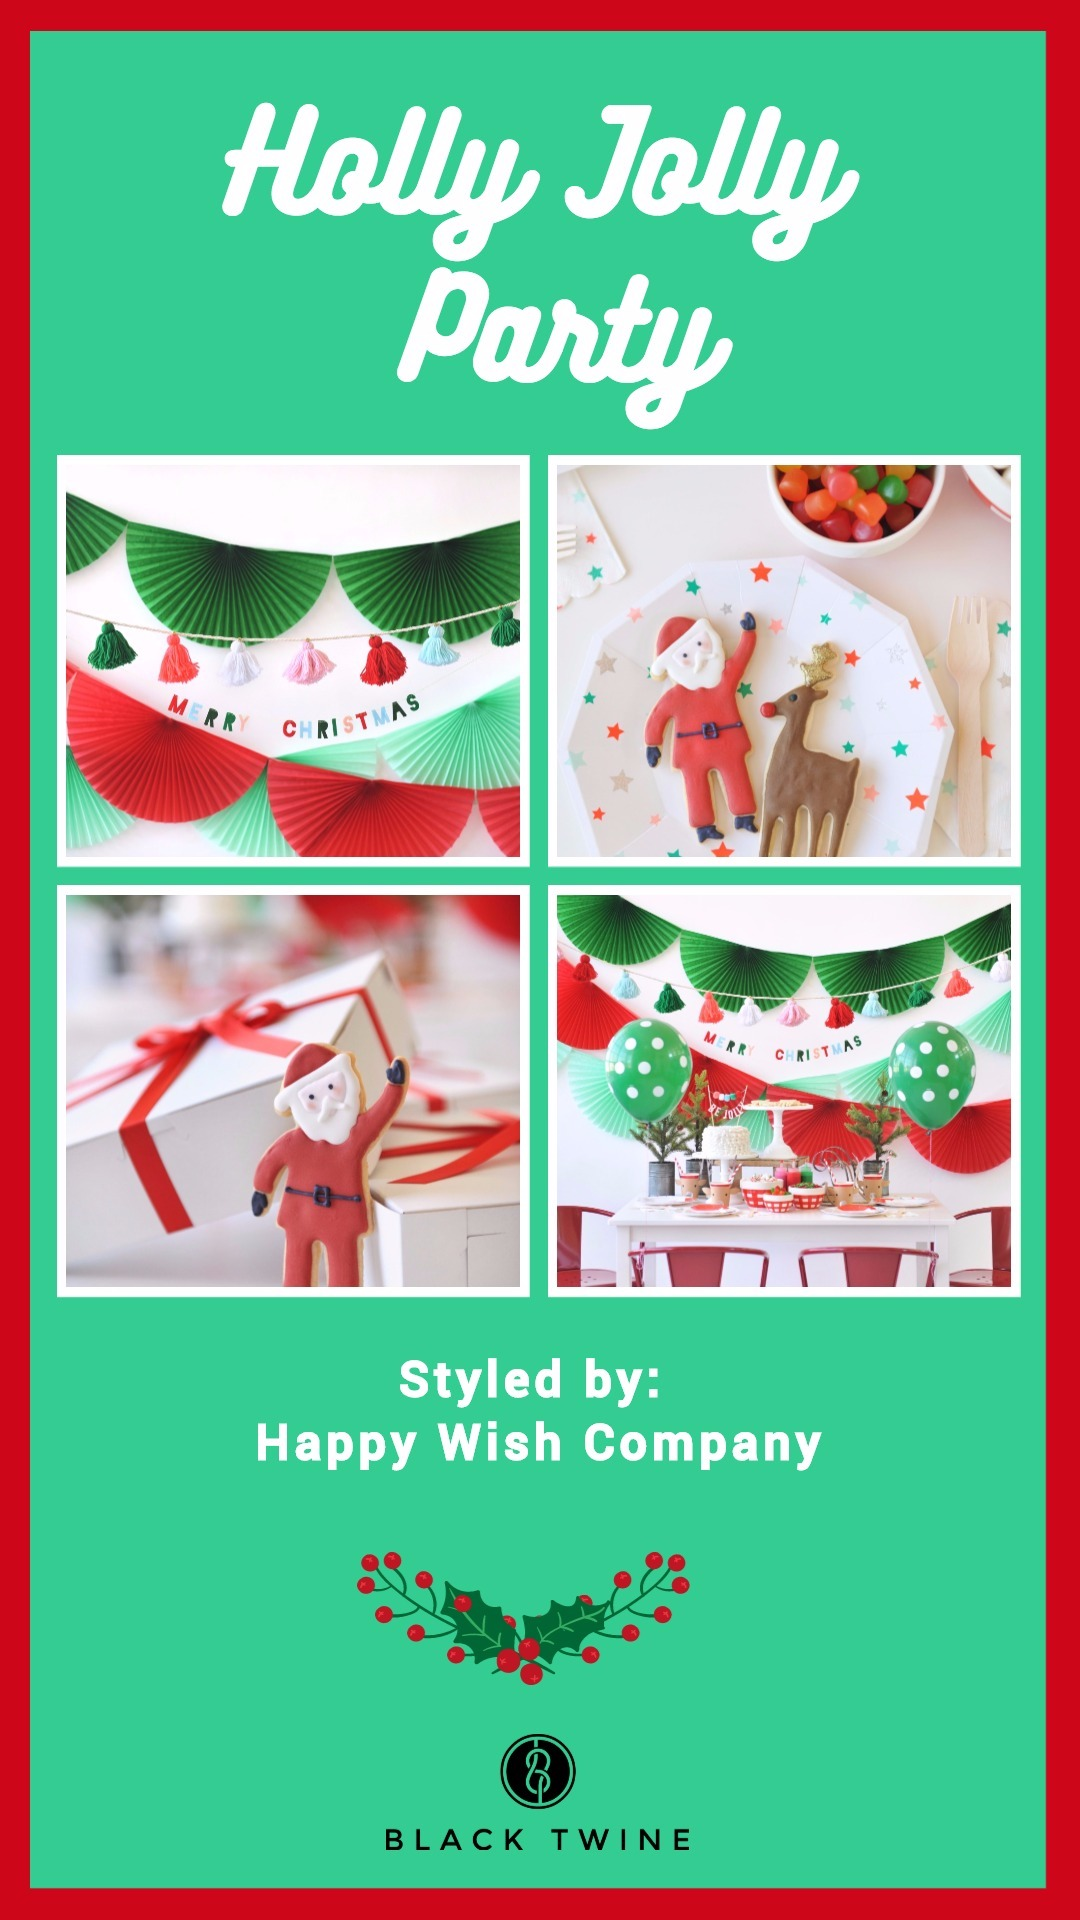 Holly Jolly Party by Happy Wish Company | Black Twine